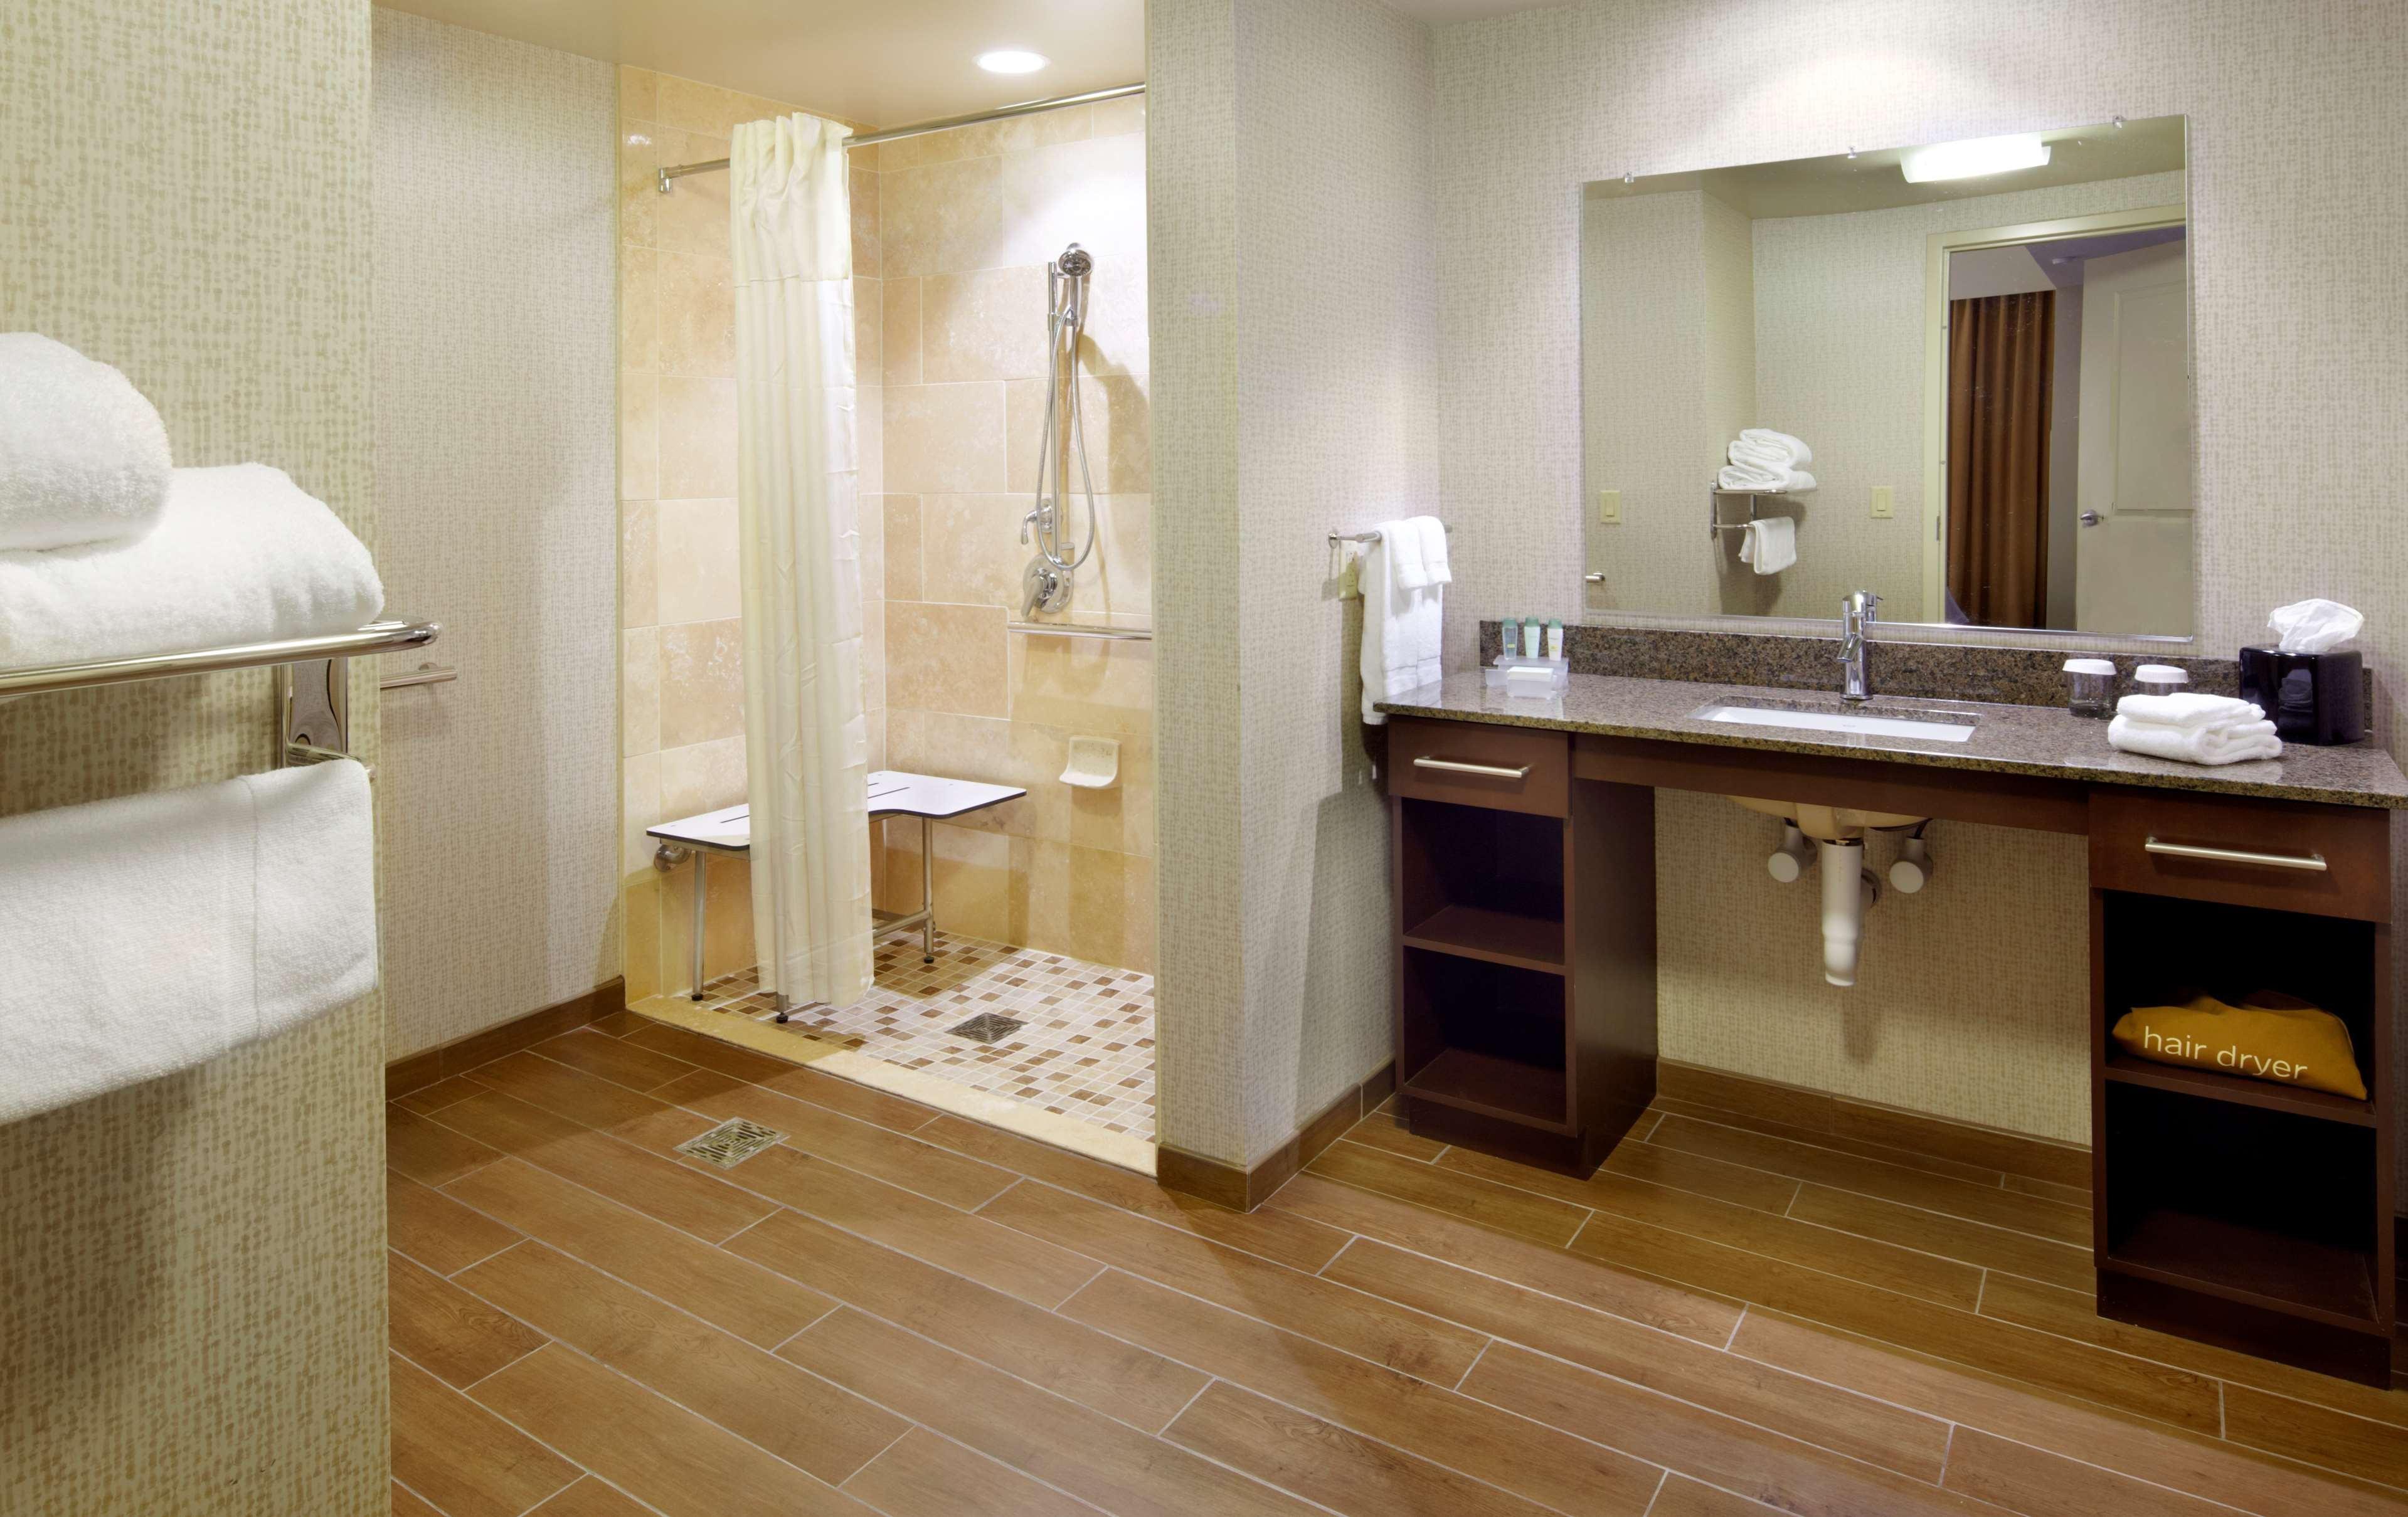 Homewood Suites by Hilton Pittsburgh Airport Robinson Mall Area PA image 11